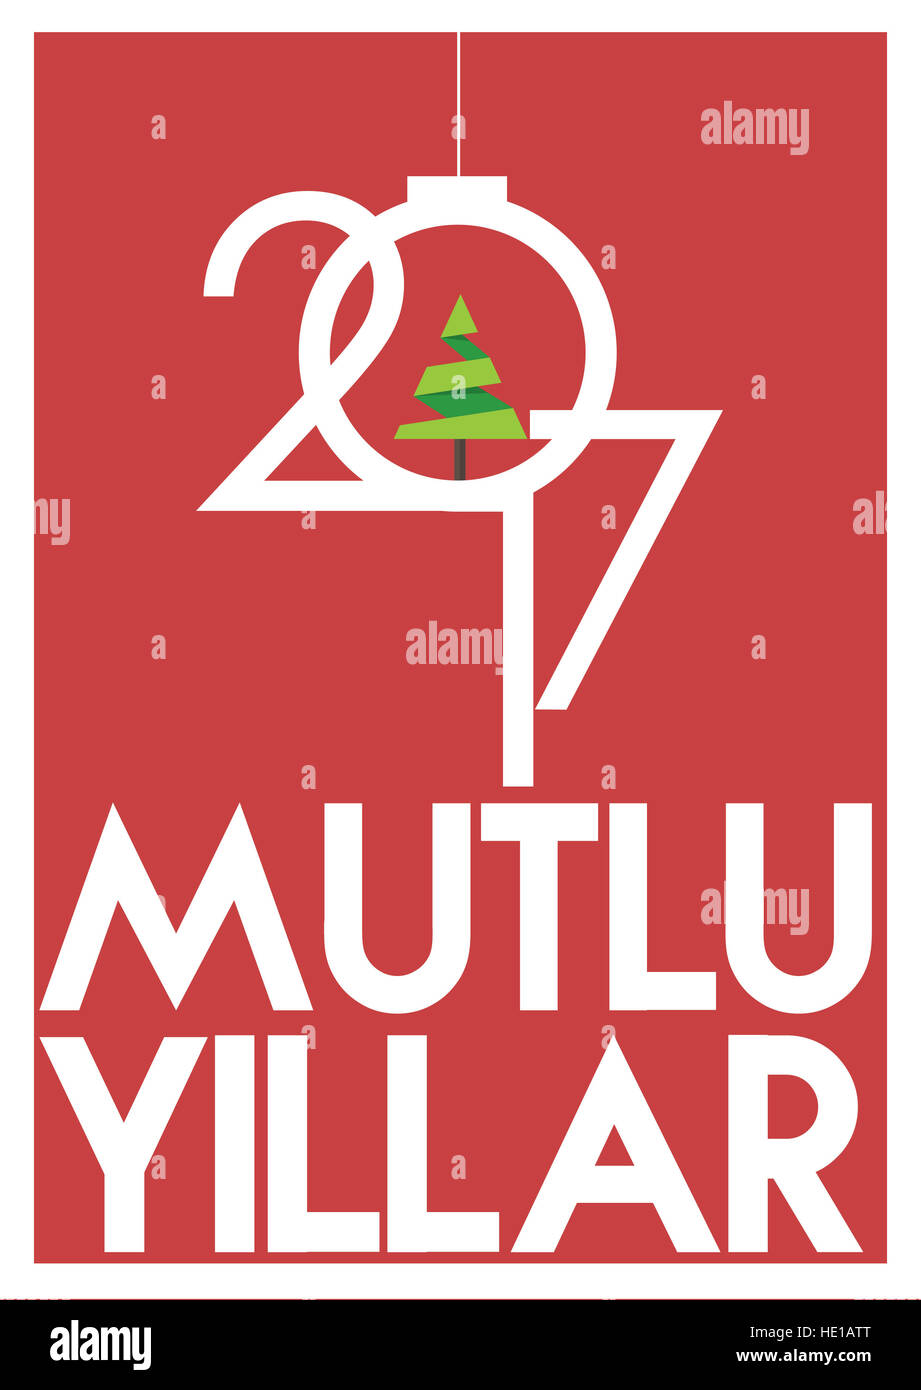 Happy New Year merry christmas 2017 background Calendar design typography illustration - Stock Image